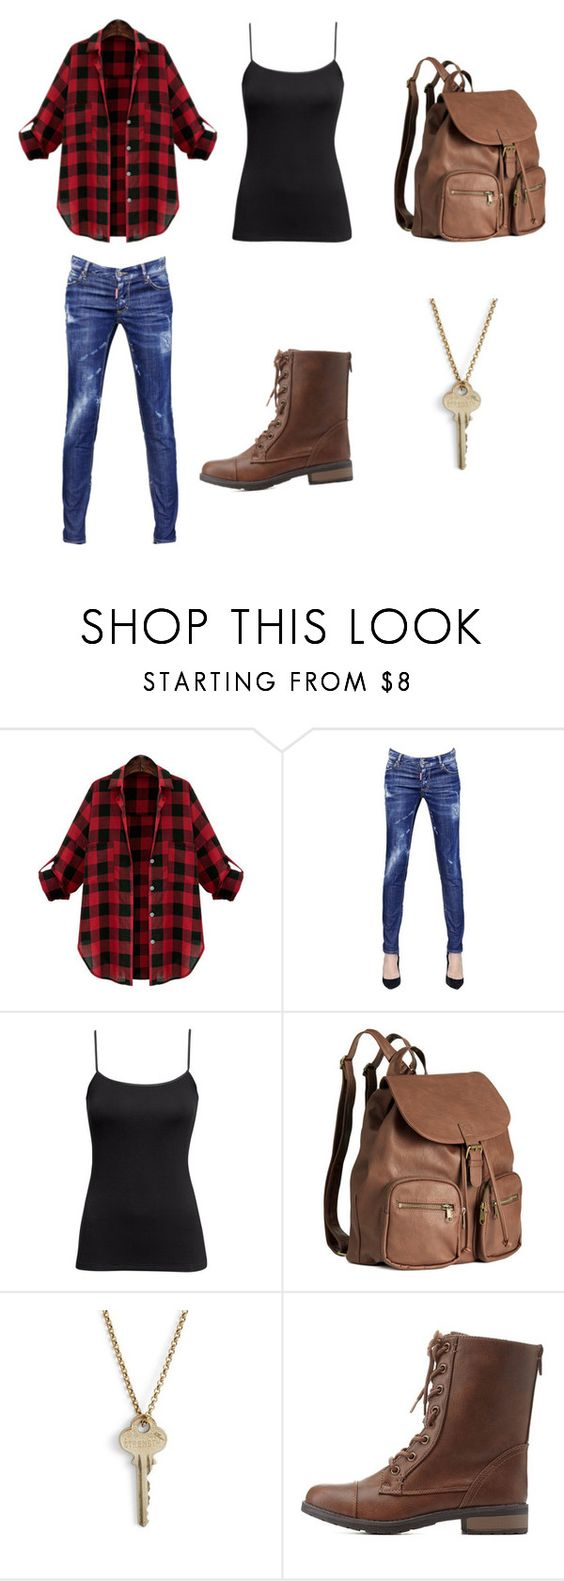 """""""Another Casual Day"""" by donna-bender ❤ liked on Polyvore featuring Dsquared2, H&M, The Giving Keys and Charlotte Russe"""